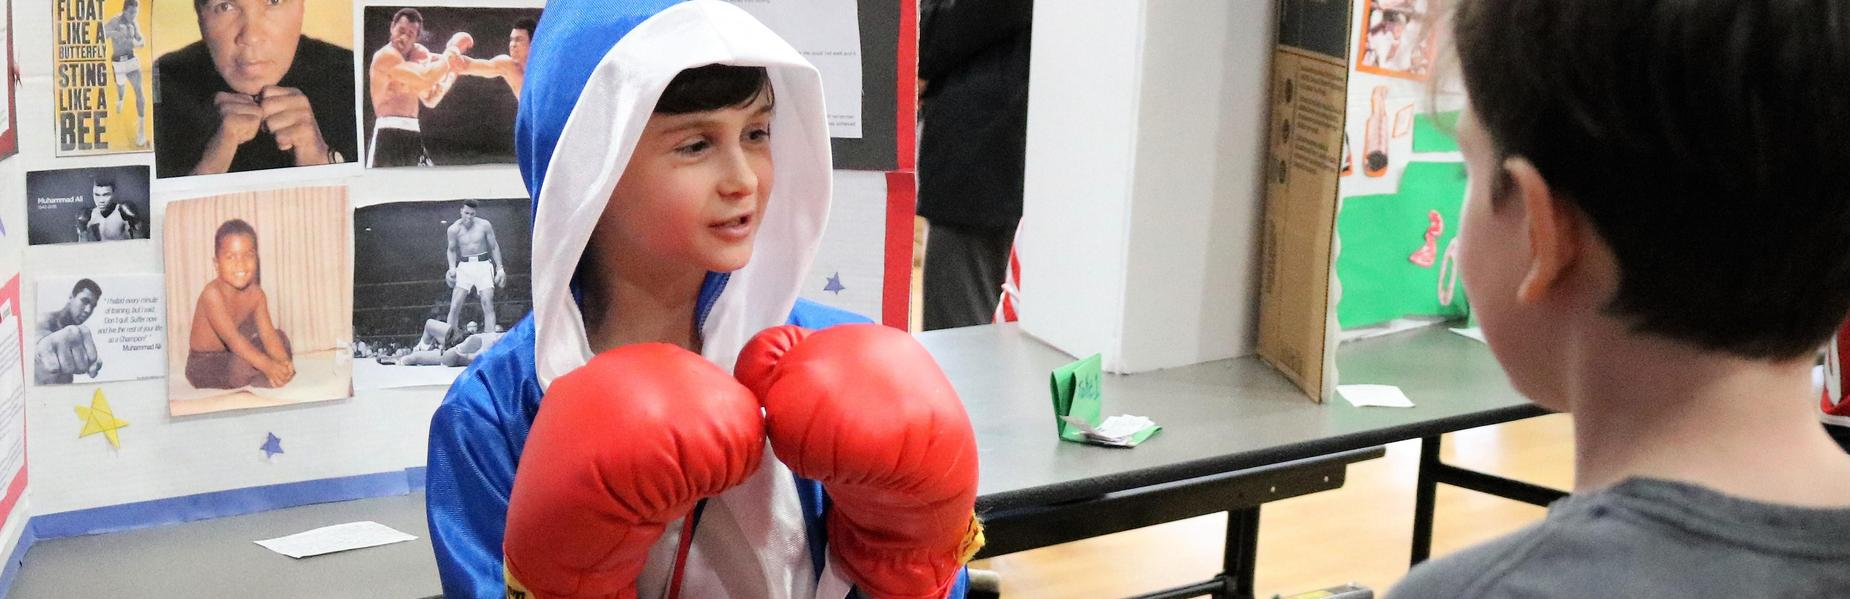 Photo of a 4th grade student dressed as Muhammad Ali during the school's